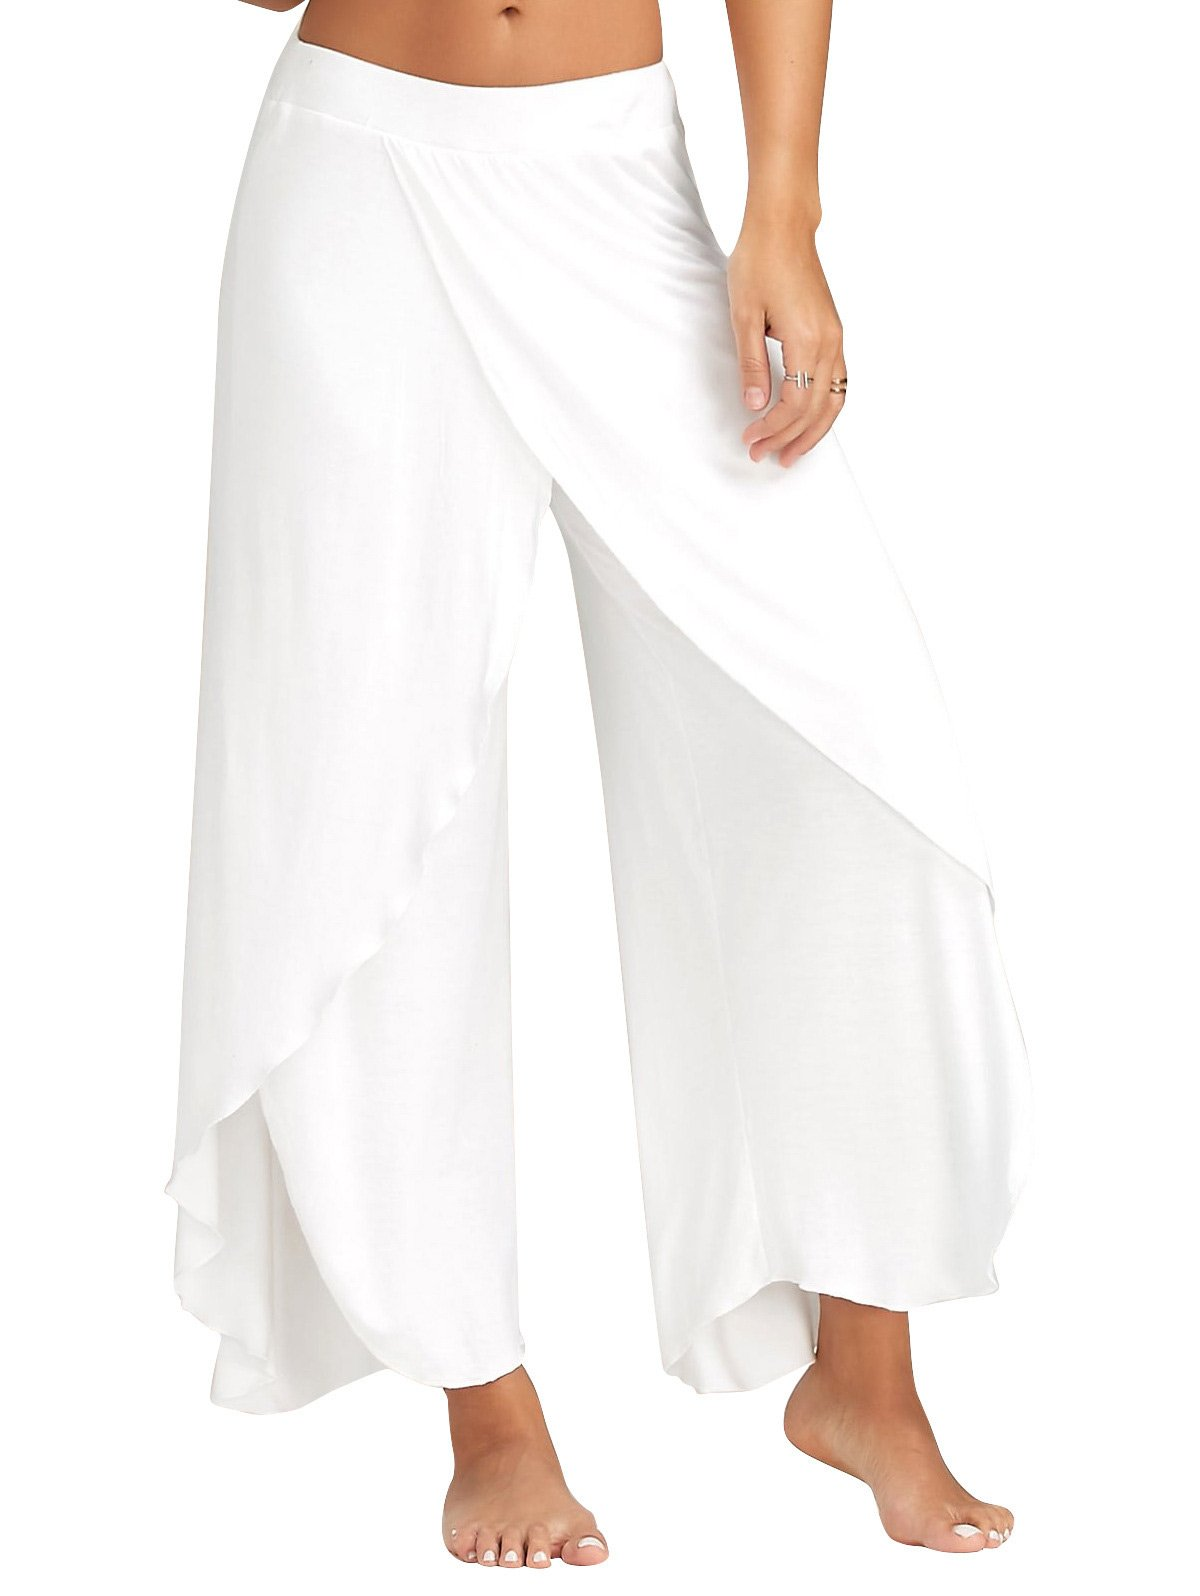 Darshion Women High Split Loose Flared Palazzo Lounge Pants (L, White)